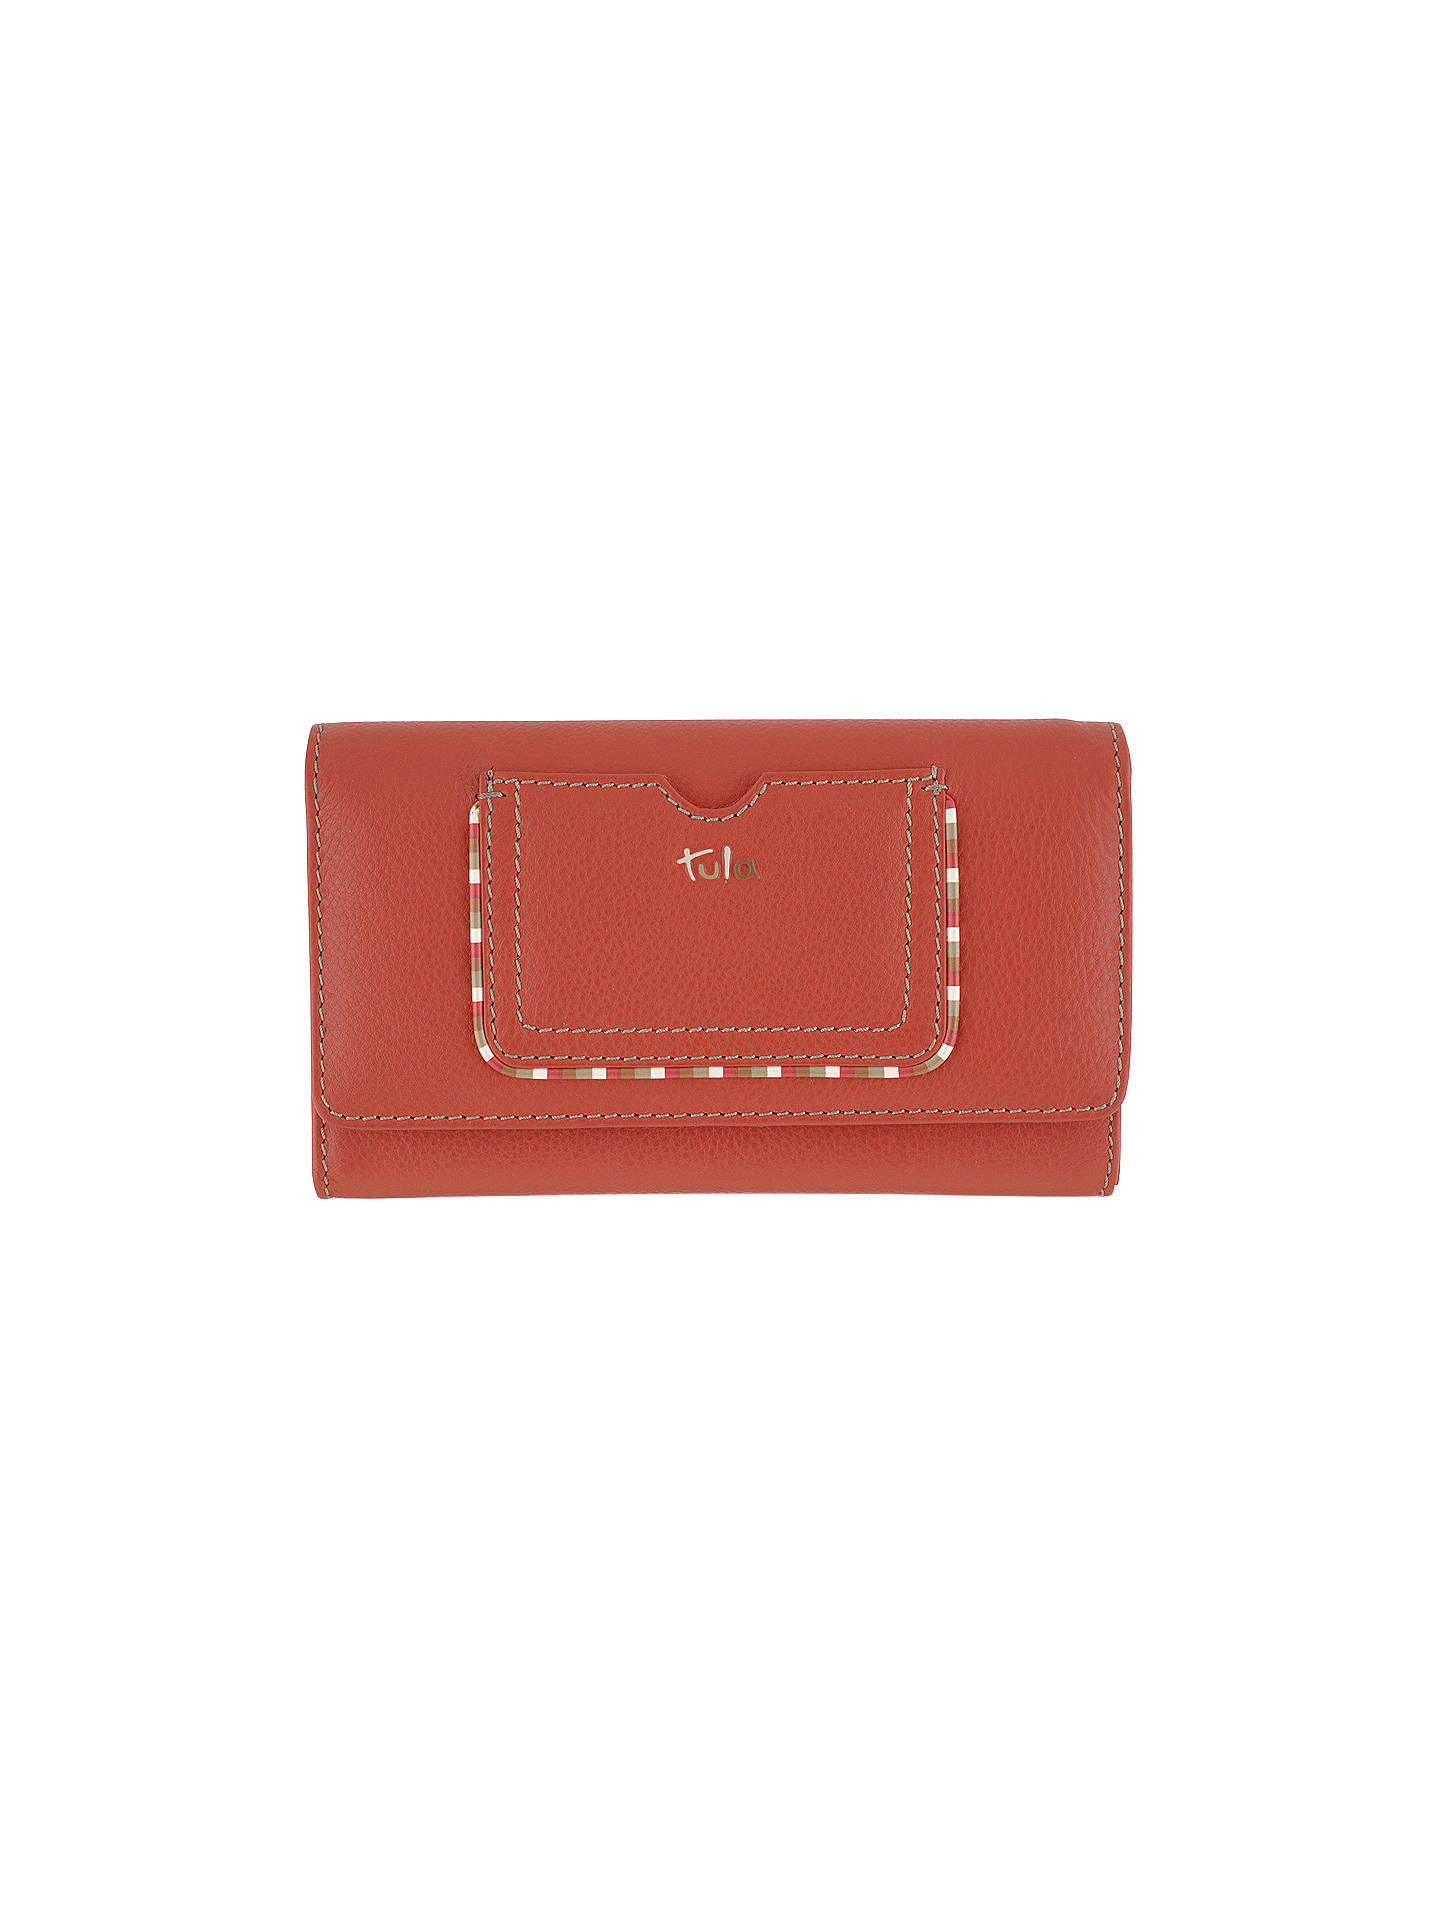 e0c9b2ba28c BuyTula Mallory Leather Large Flapover Matinee Purse, Red Online at  johnlewis.com ...